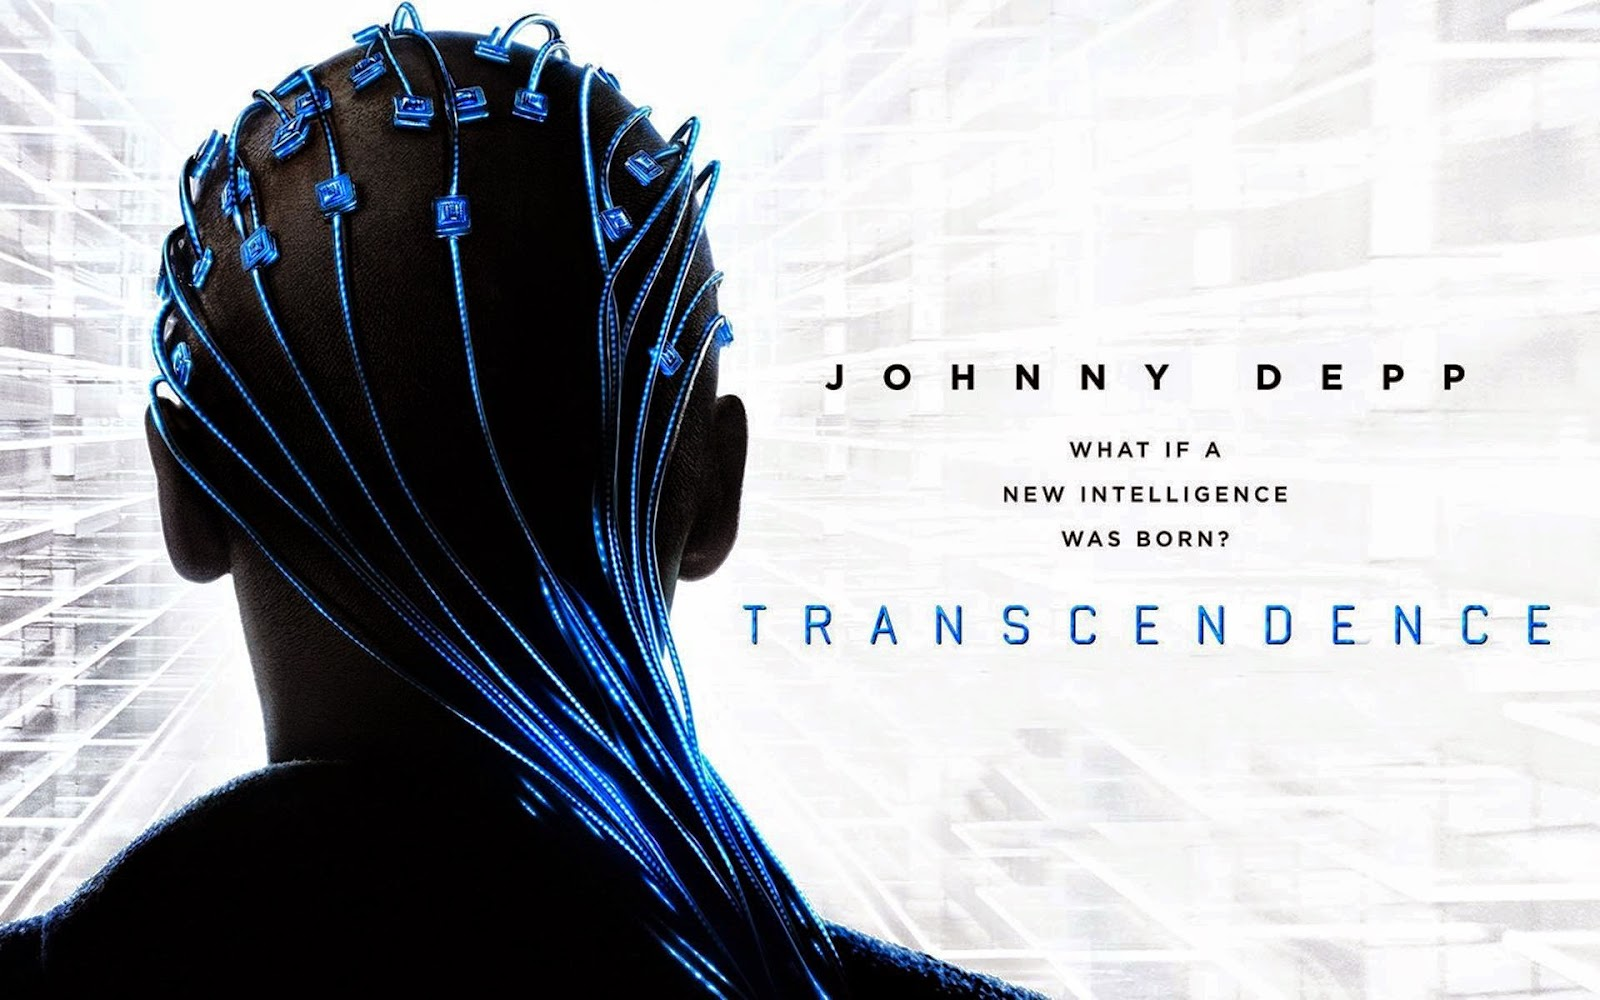 Transcendence(2014) Movie Trailer & Review